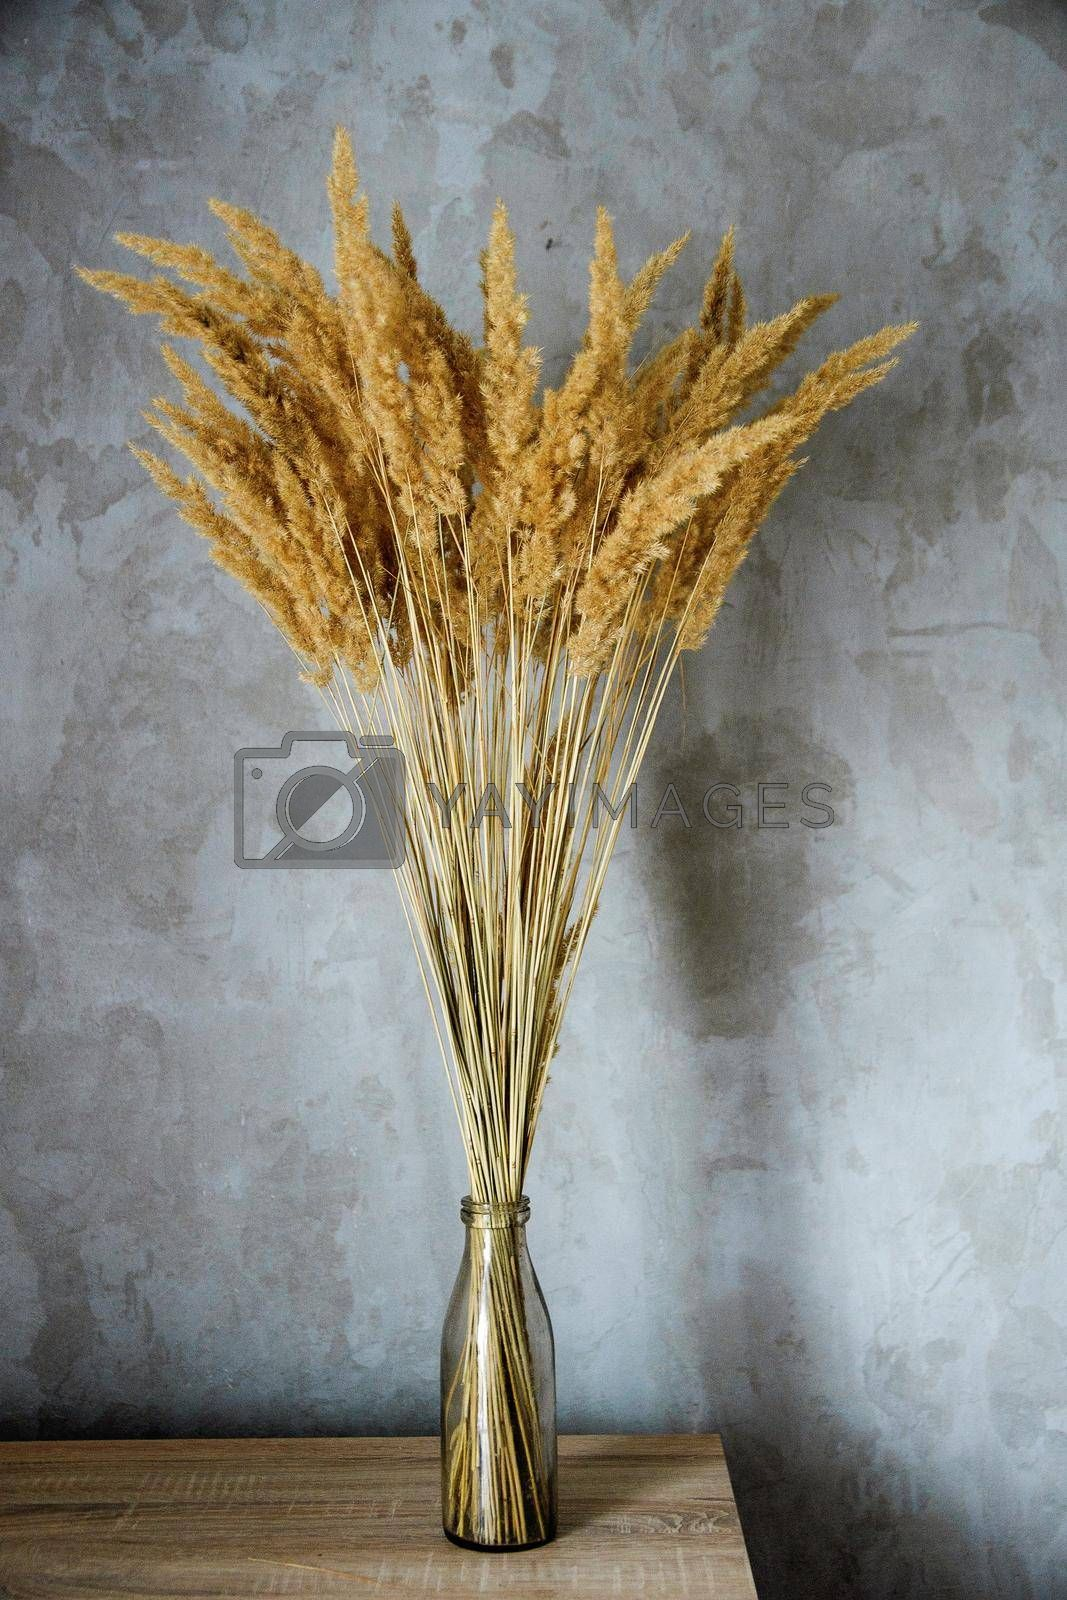 dried flower vase stands on a wooden table near a concrete wall